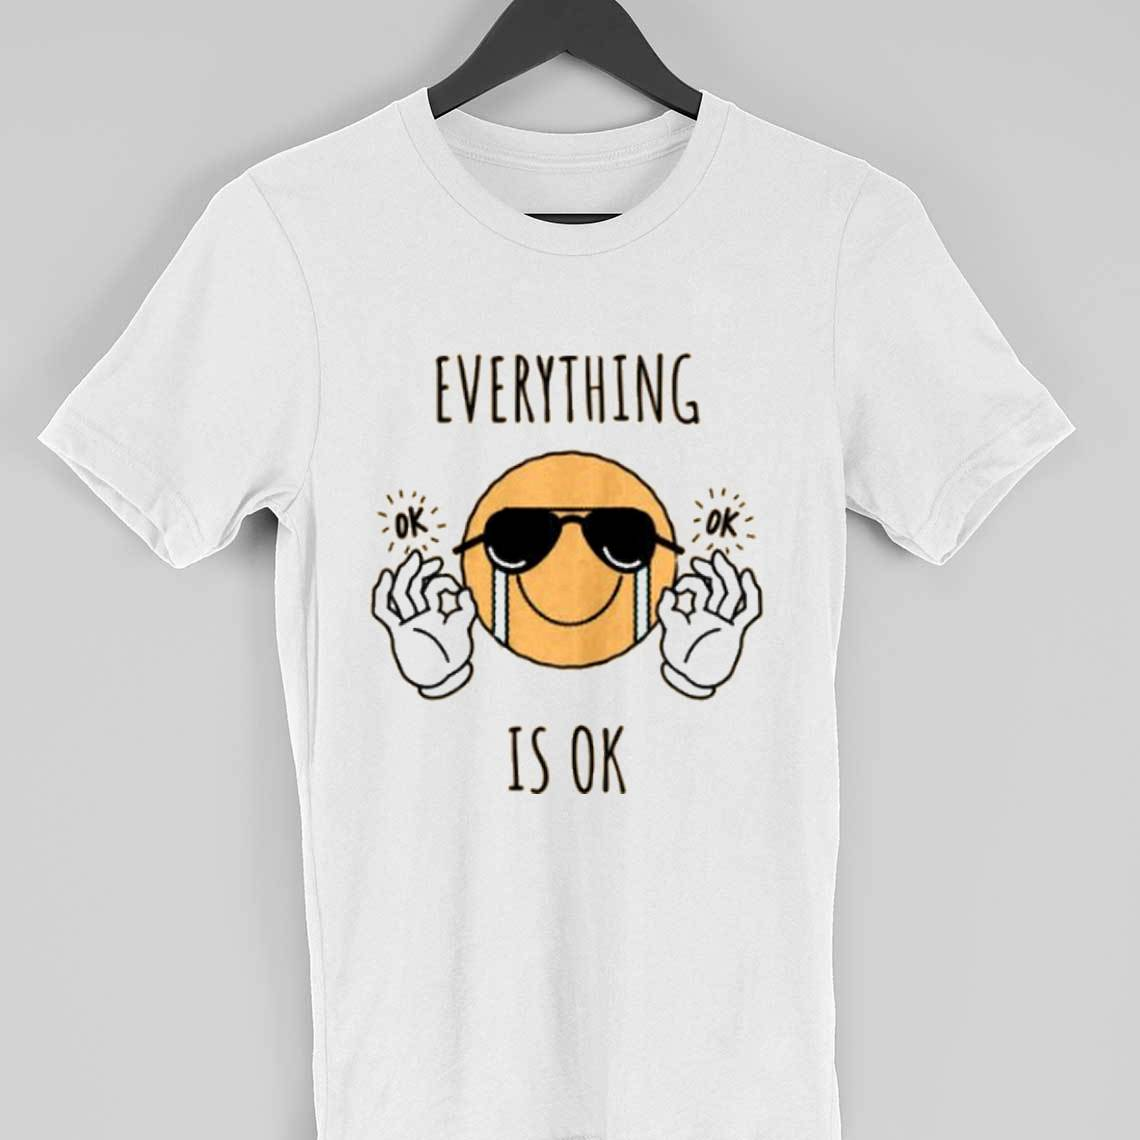 everything is ok t-shirt